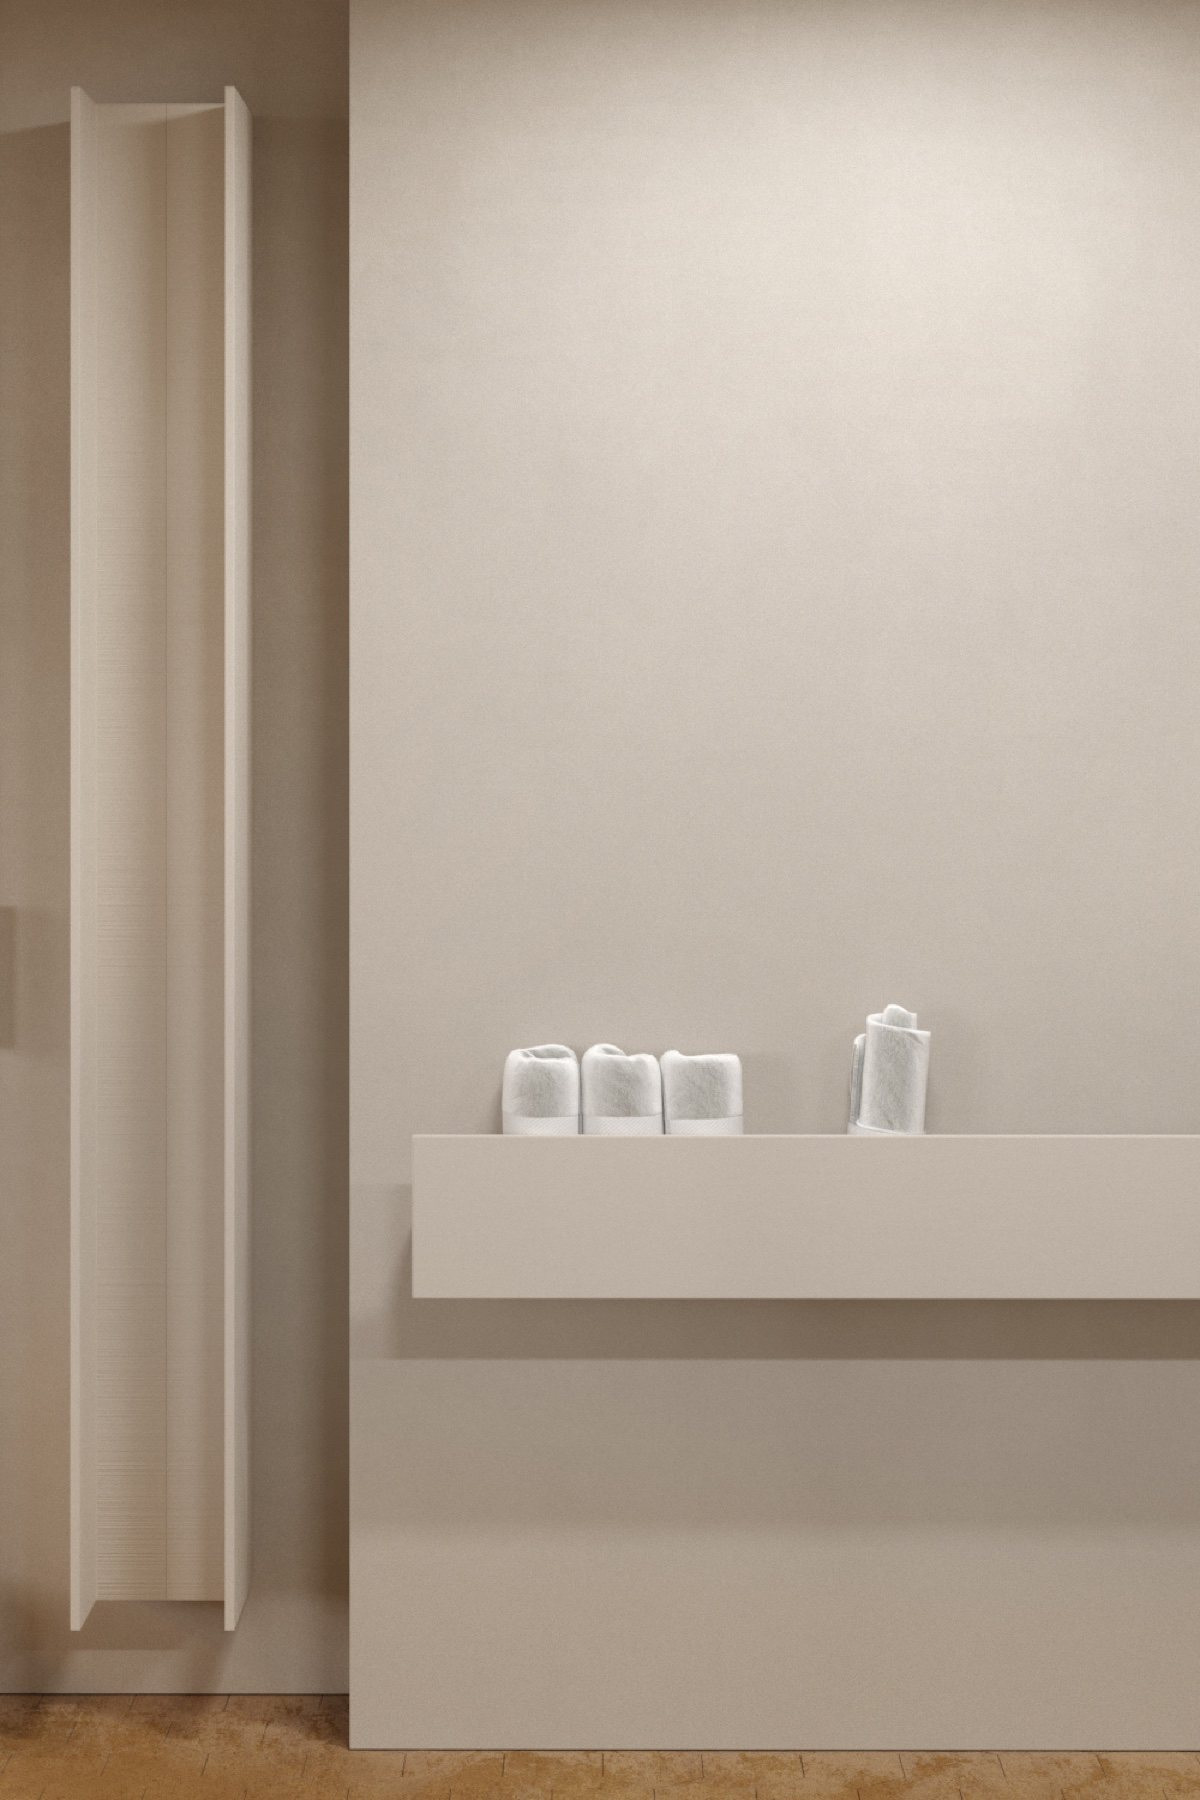 Minimal bathroom white enamel shelving white rolled hand towels